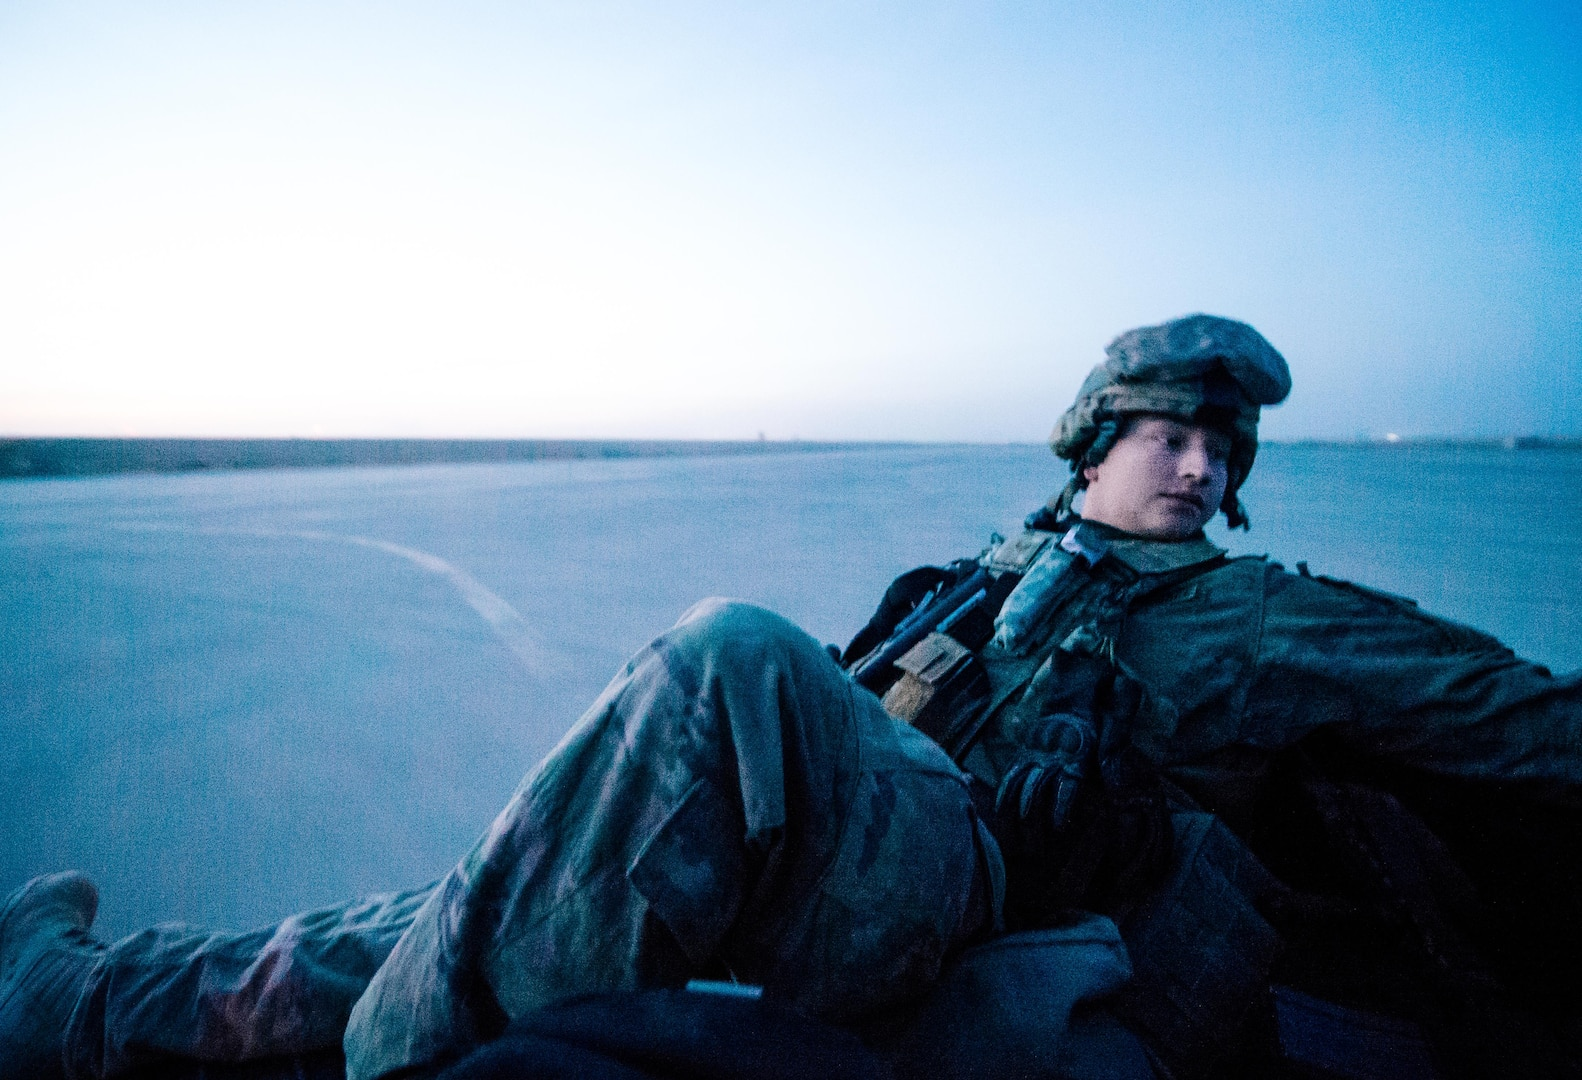 Senior Airman Jacob Brooks, 821st Contingency Response Group aircraft maintainer, catches a ride in the back of a utility vehicle out to the airstrip at Qayyarah West Airfield, Iraq, in support of Combined Joint Task Force - Operation Inherent Resolve, Nov. 14, 2016. The airfield at Qayyarah West was recaptured from Da'esh by Iraqi forces in July 2016, and has been refurbished by Coalition engineers to allow the re-commencement of air operations. Qayyarah Airfield is now a vital logistical hub, opening an air corridor in support of the battle to liberate Mosul as well as operations throughout northern Iraq. (U.S. Air Force photo by Senior Airman Jordan Castelan)